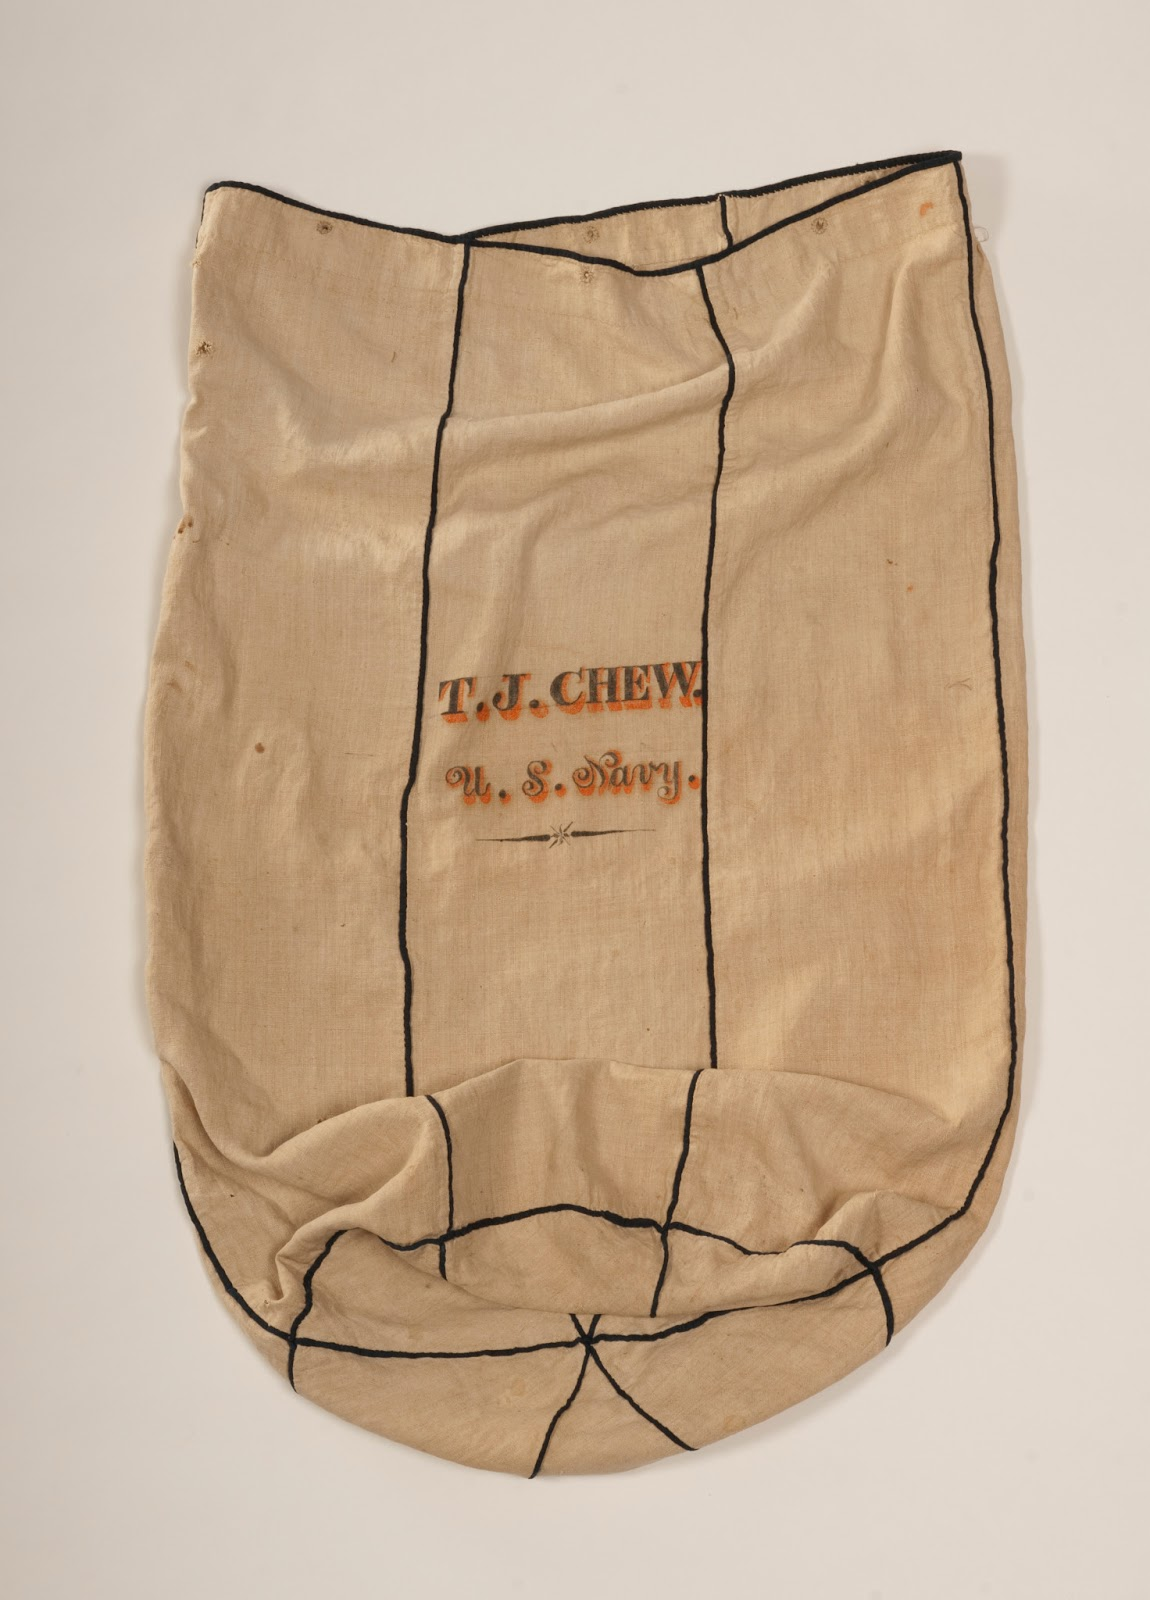 dfe71220e50 Purser Thomas Chew s bag, 1812 to 1832. USS Constitution Museum collection,  photo by David Bohl.